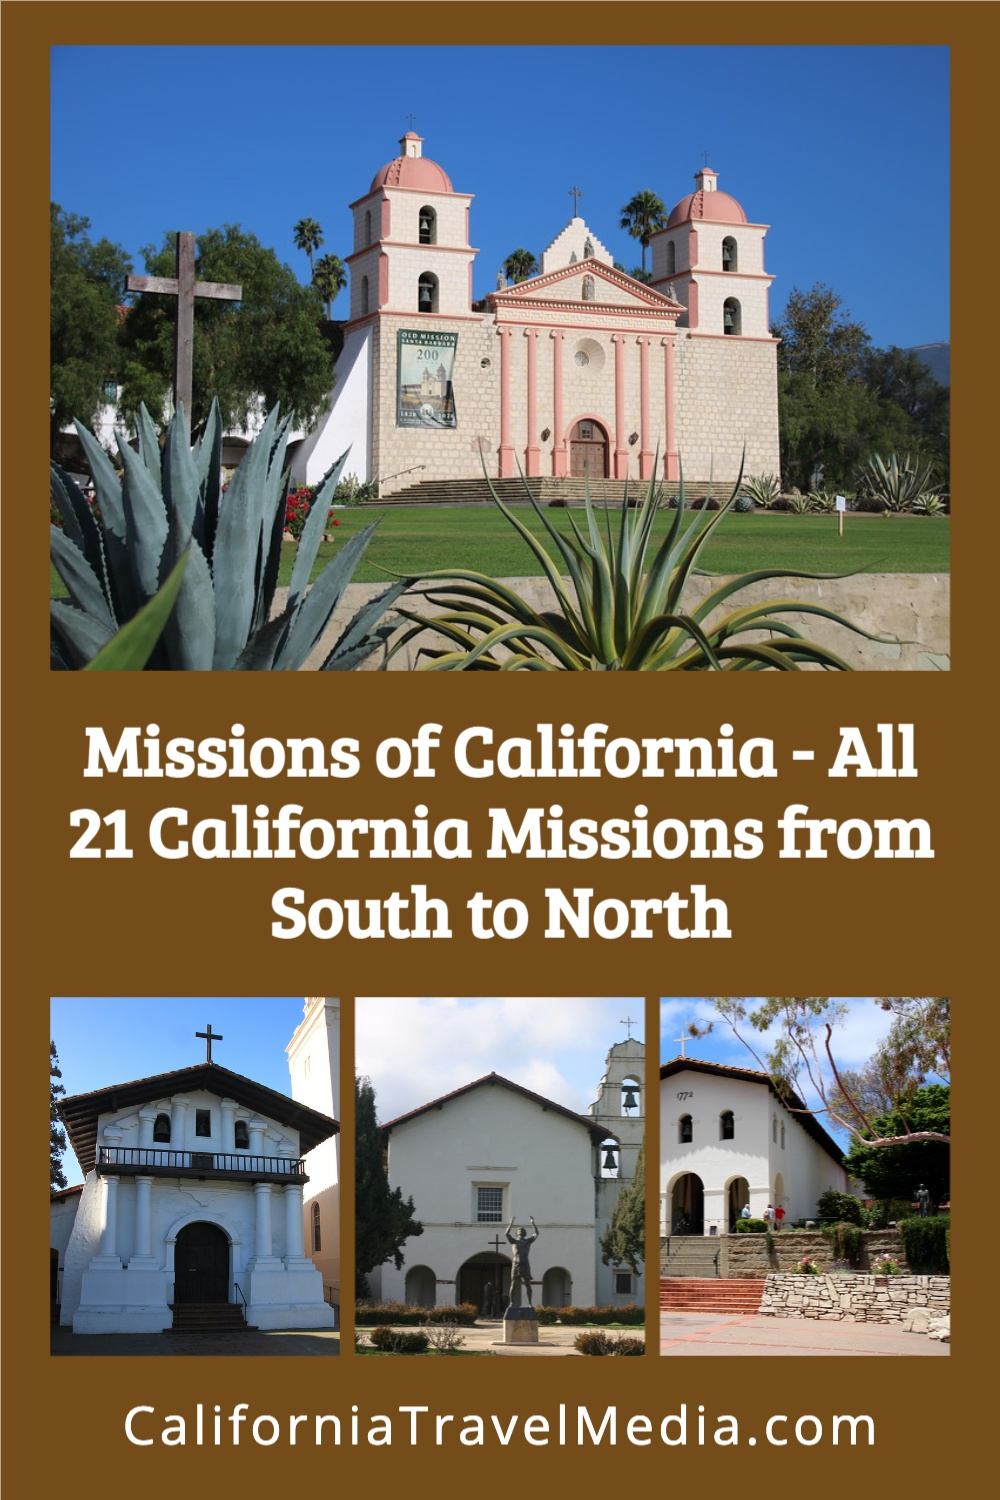 Missions of California with Map - All 21 California Missions from South to North #california #missions #history #spanish #father-serra #places #map